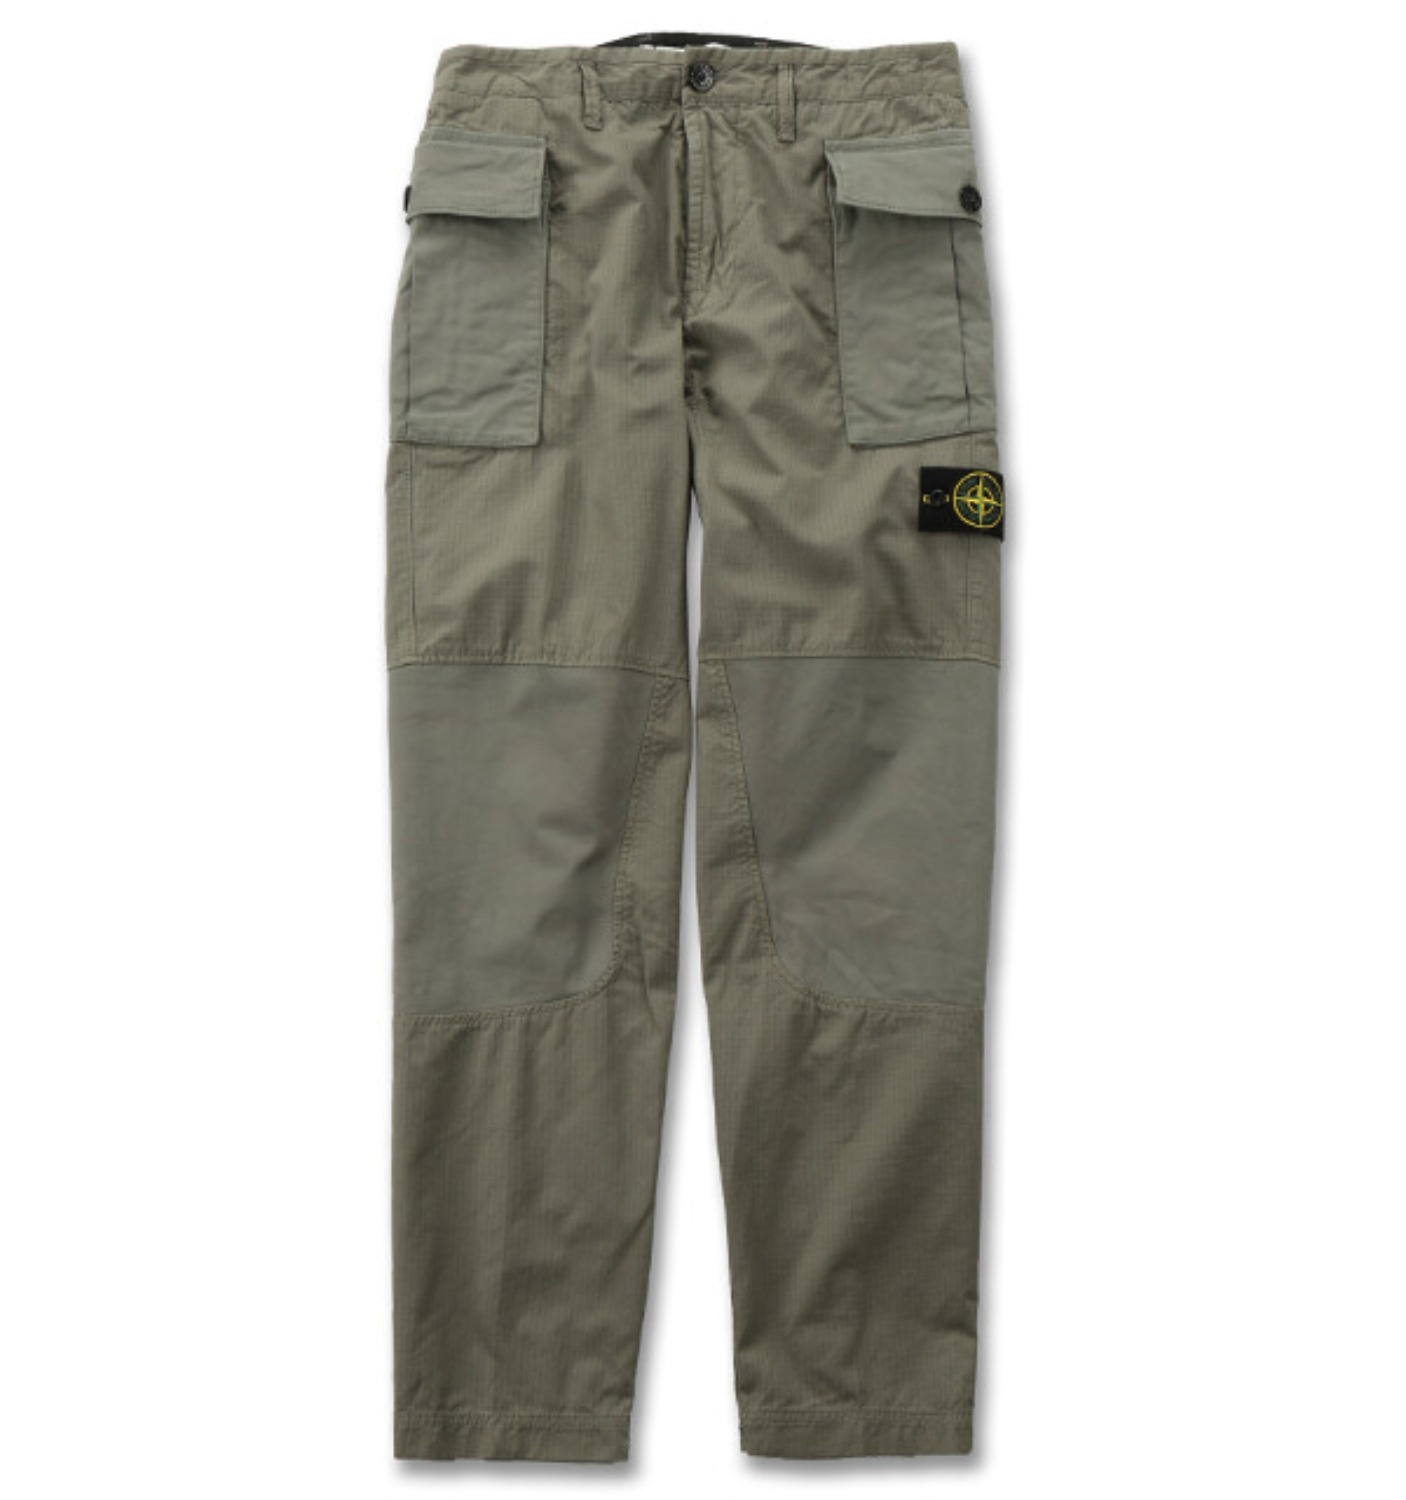 GAUZED COTTON RIP STOP GARMENT DYED PANTS KHAKI